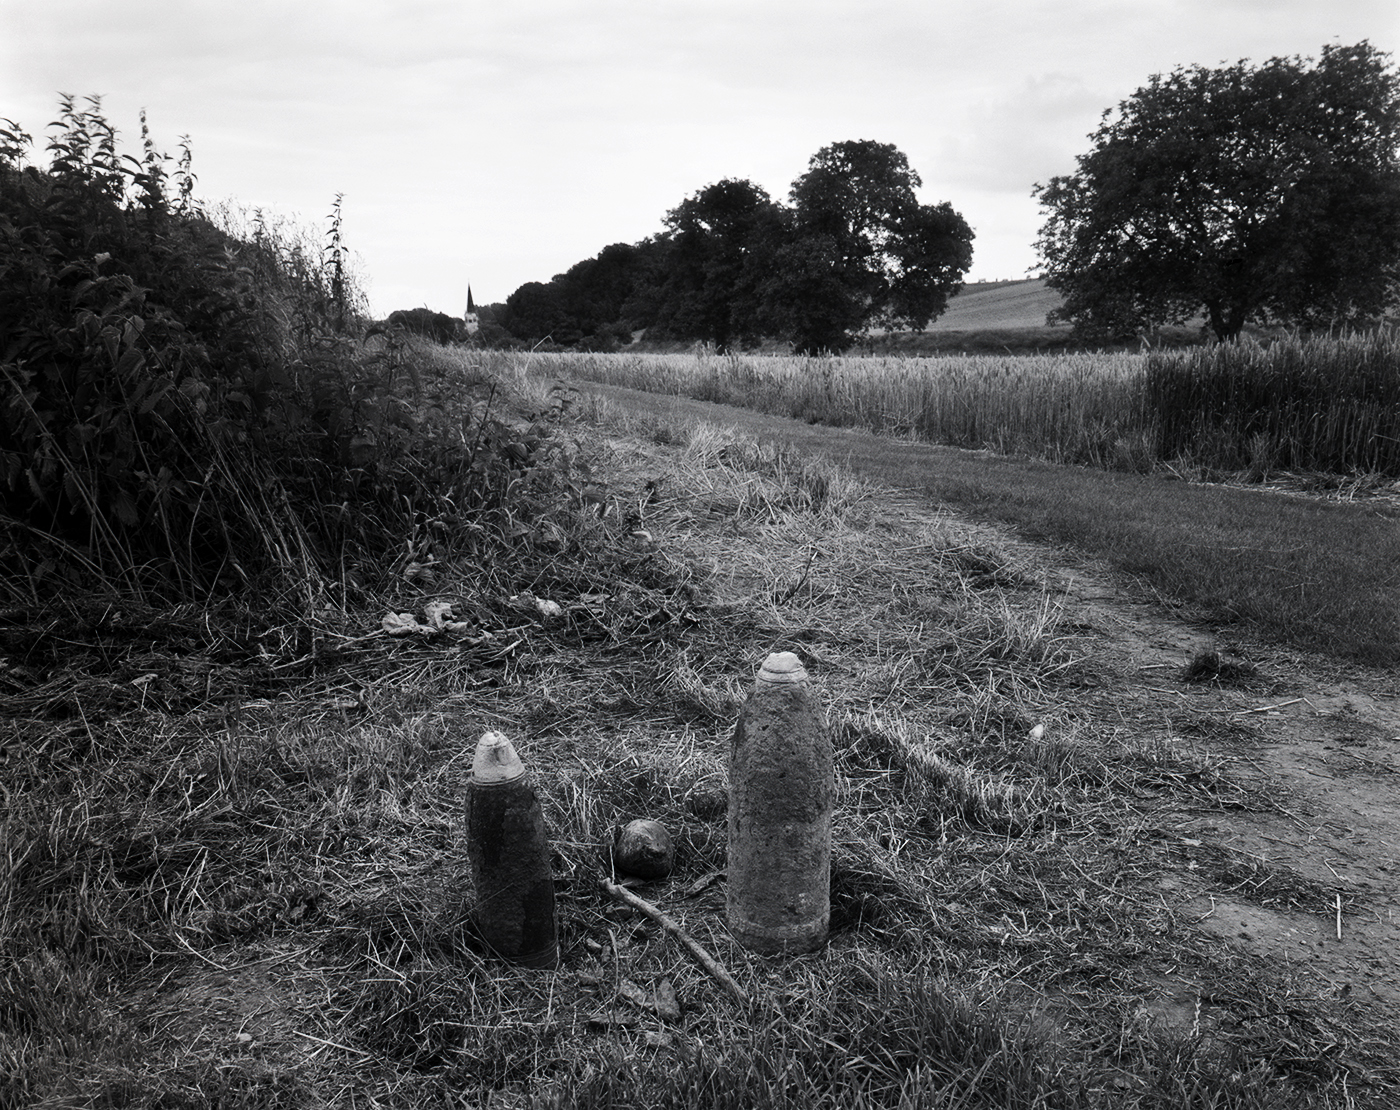 Shells left for disposal, Marne